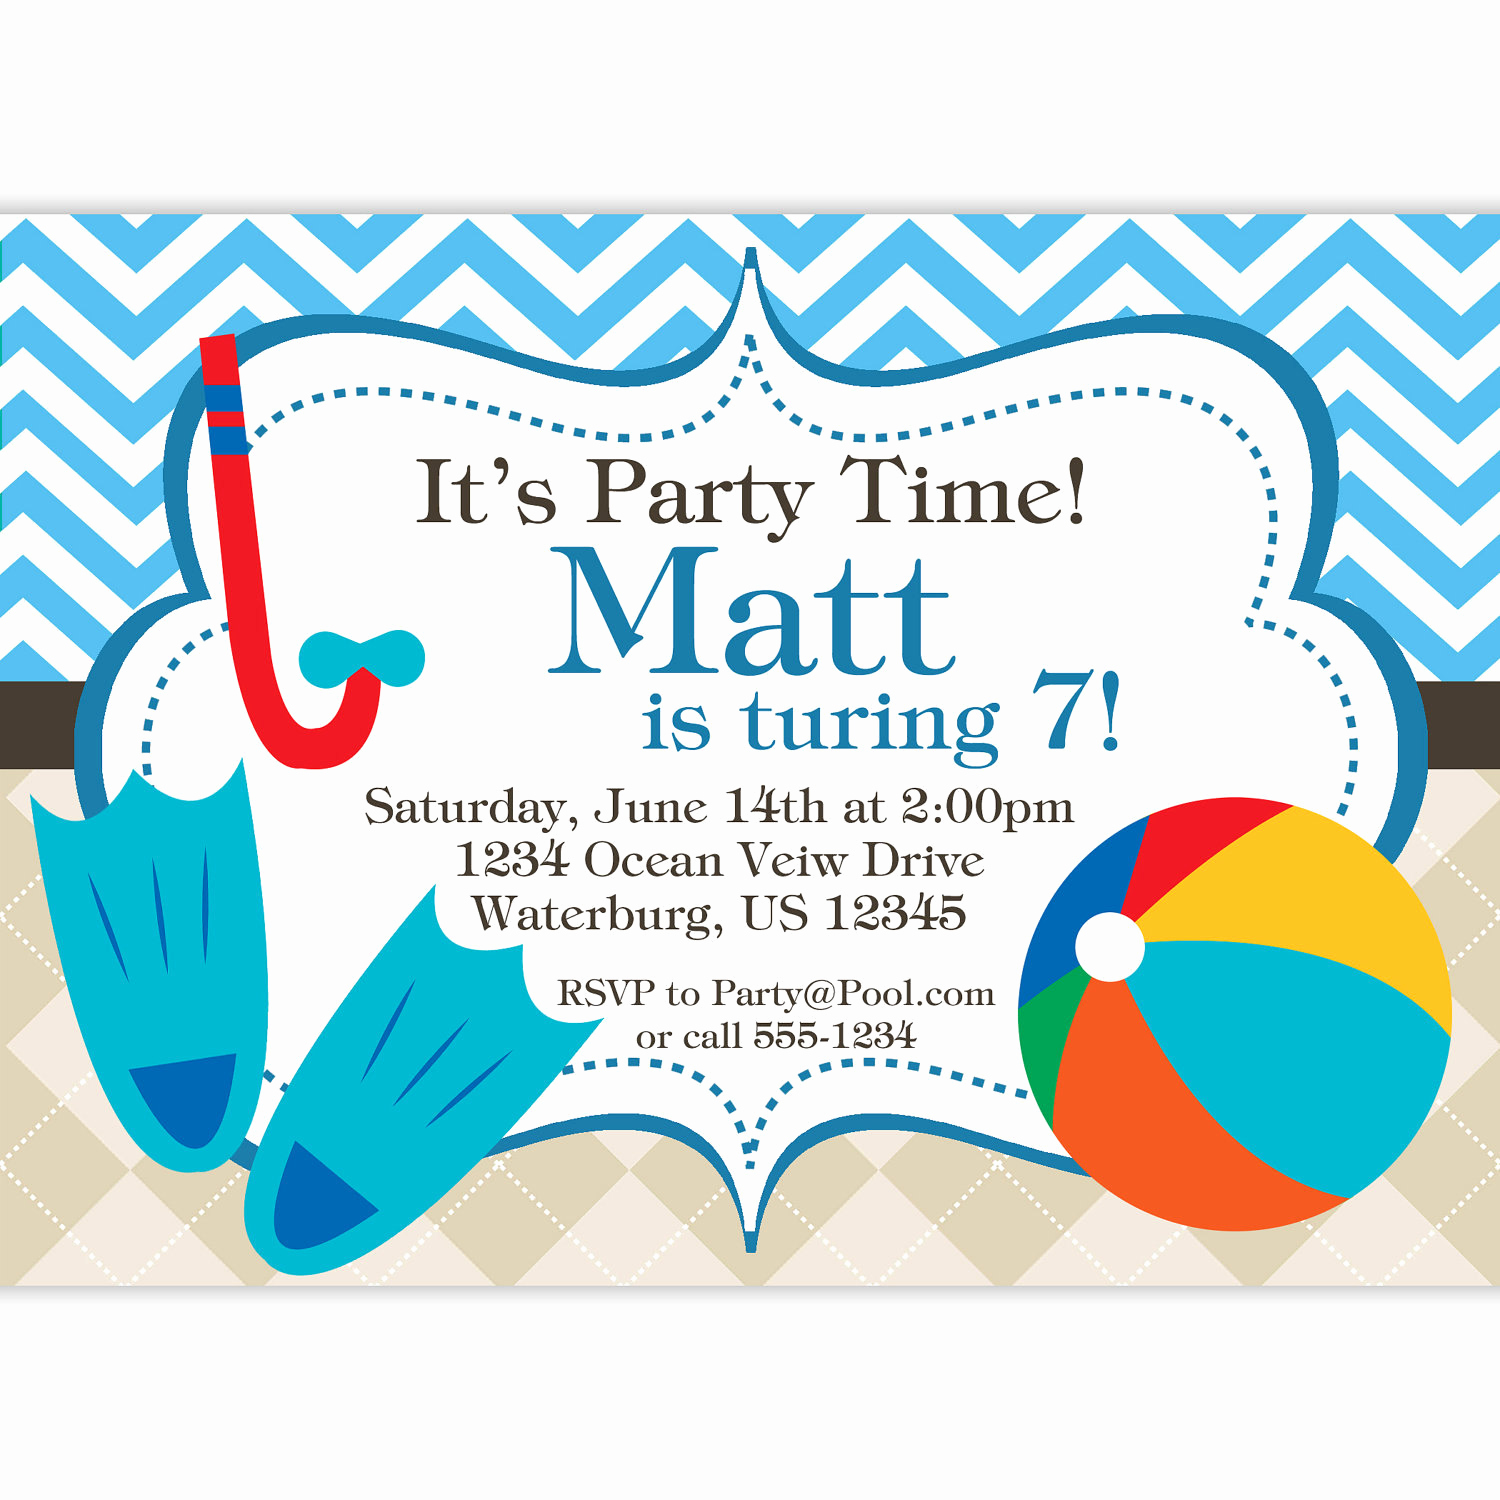 Pool Birthday Party Invitation Beautiful Pool Invitation Blue Chevron and Tan Argyle Beach Ball